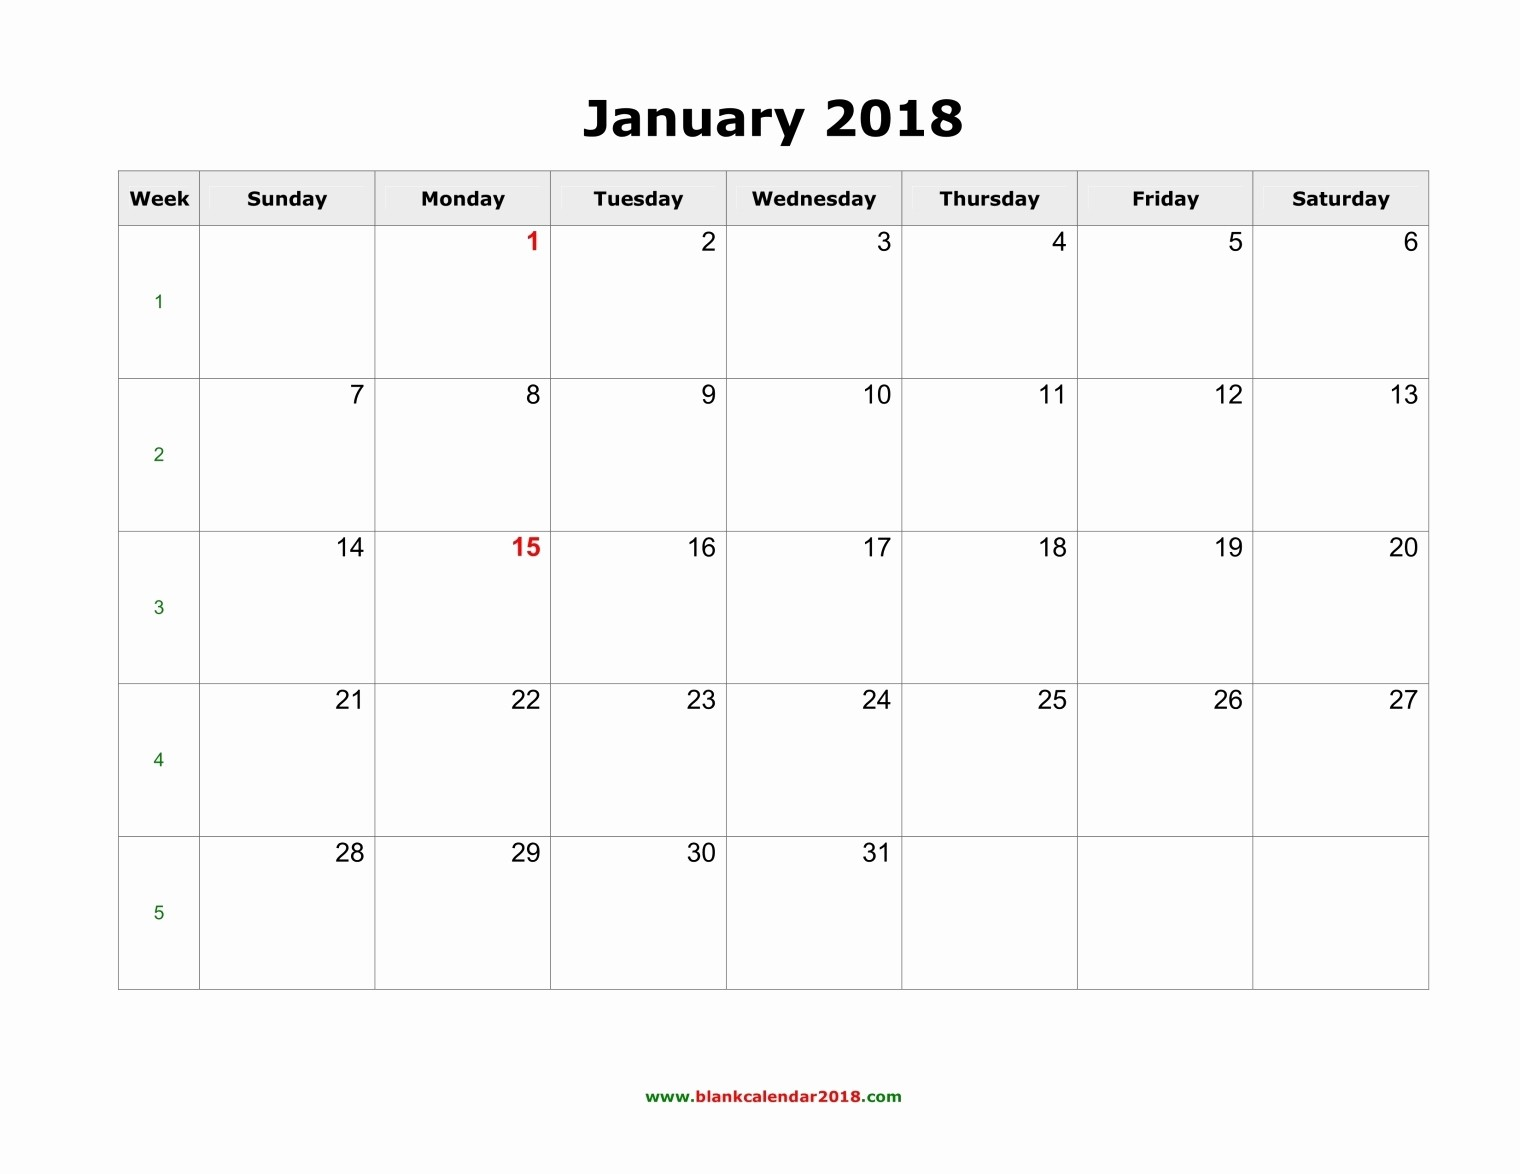 2018 Month by Month Calendar Beautiful Blank Monthly Calendar 2018 Landscape